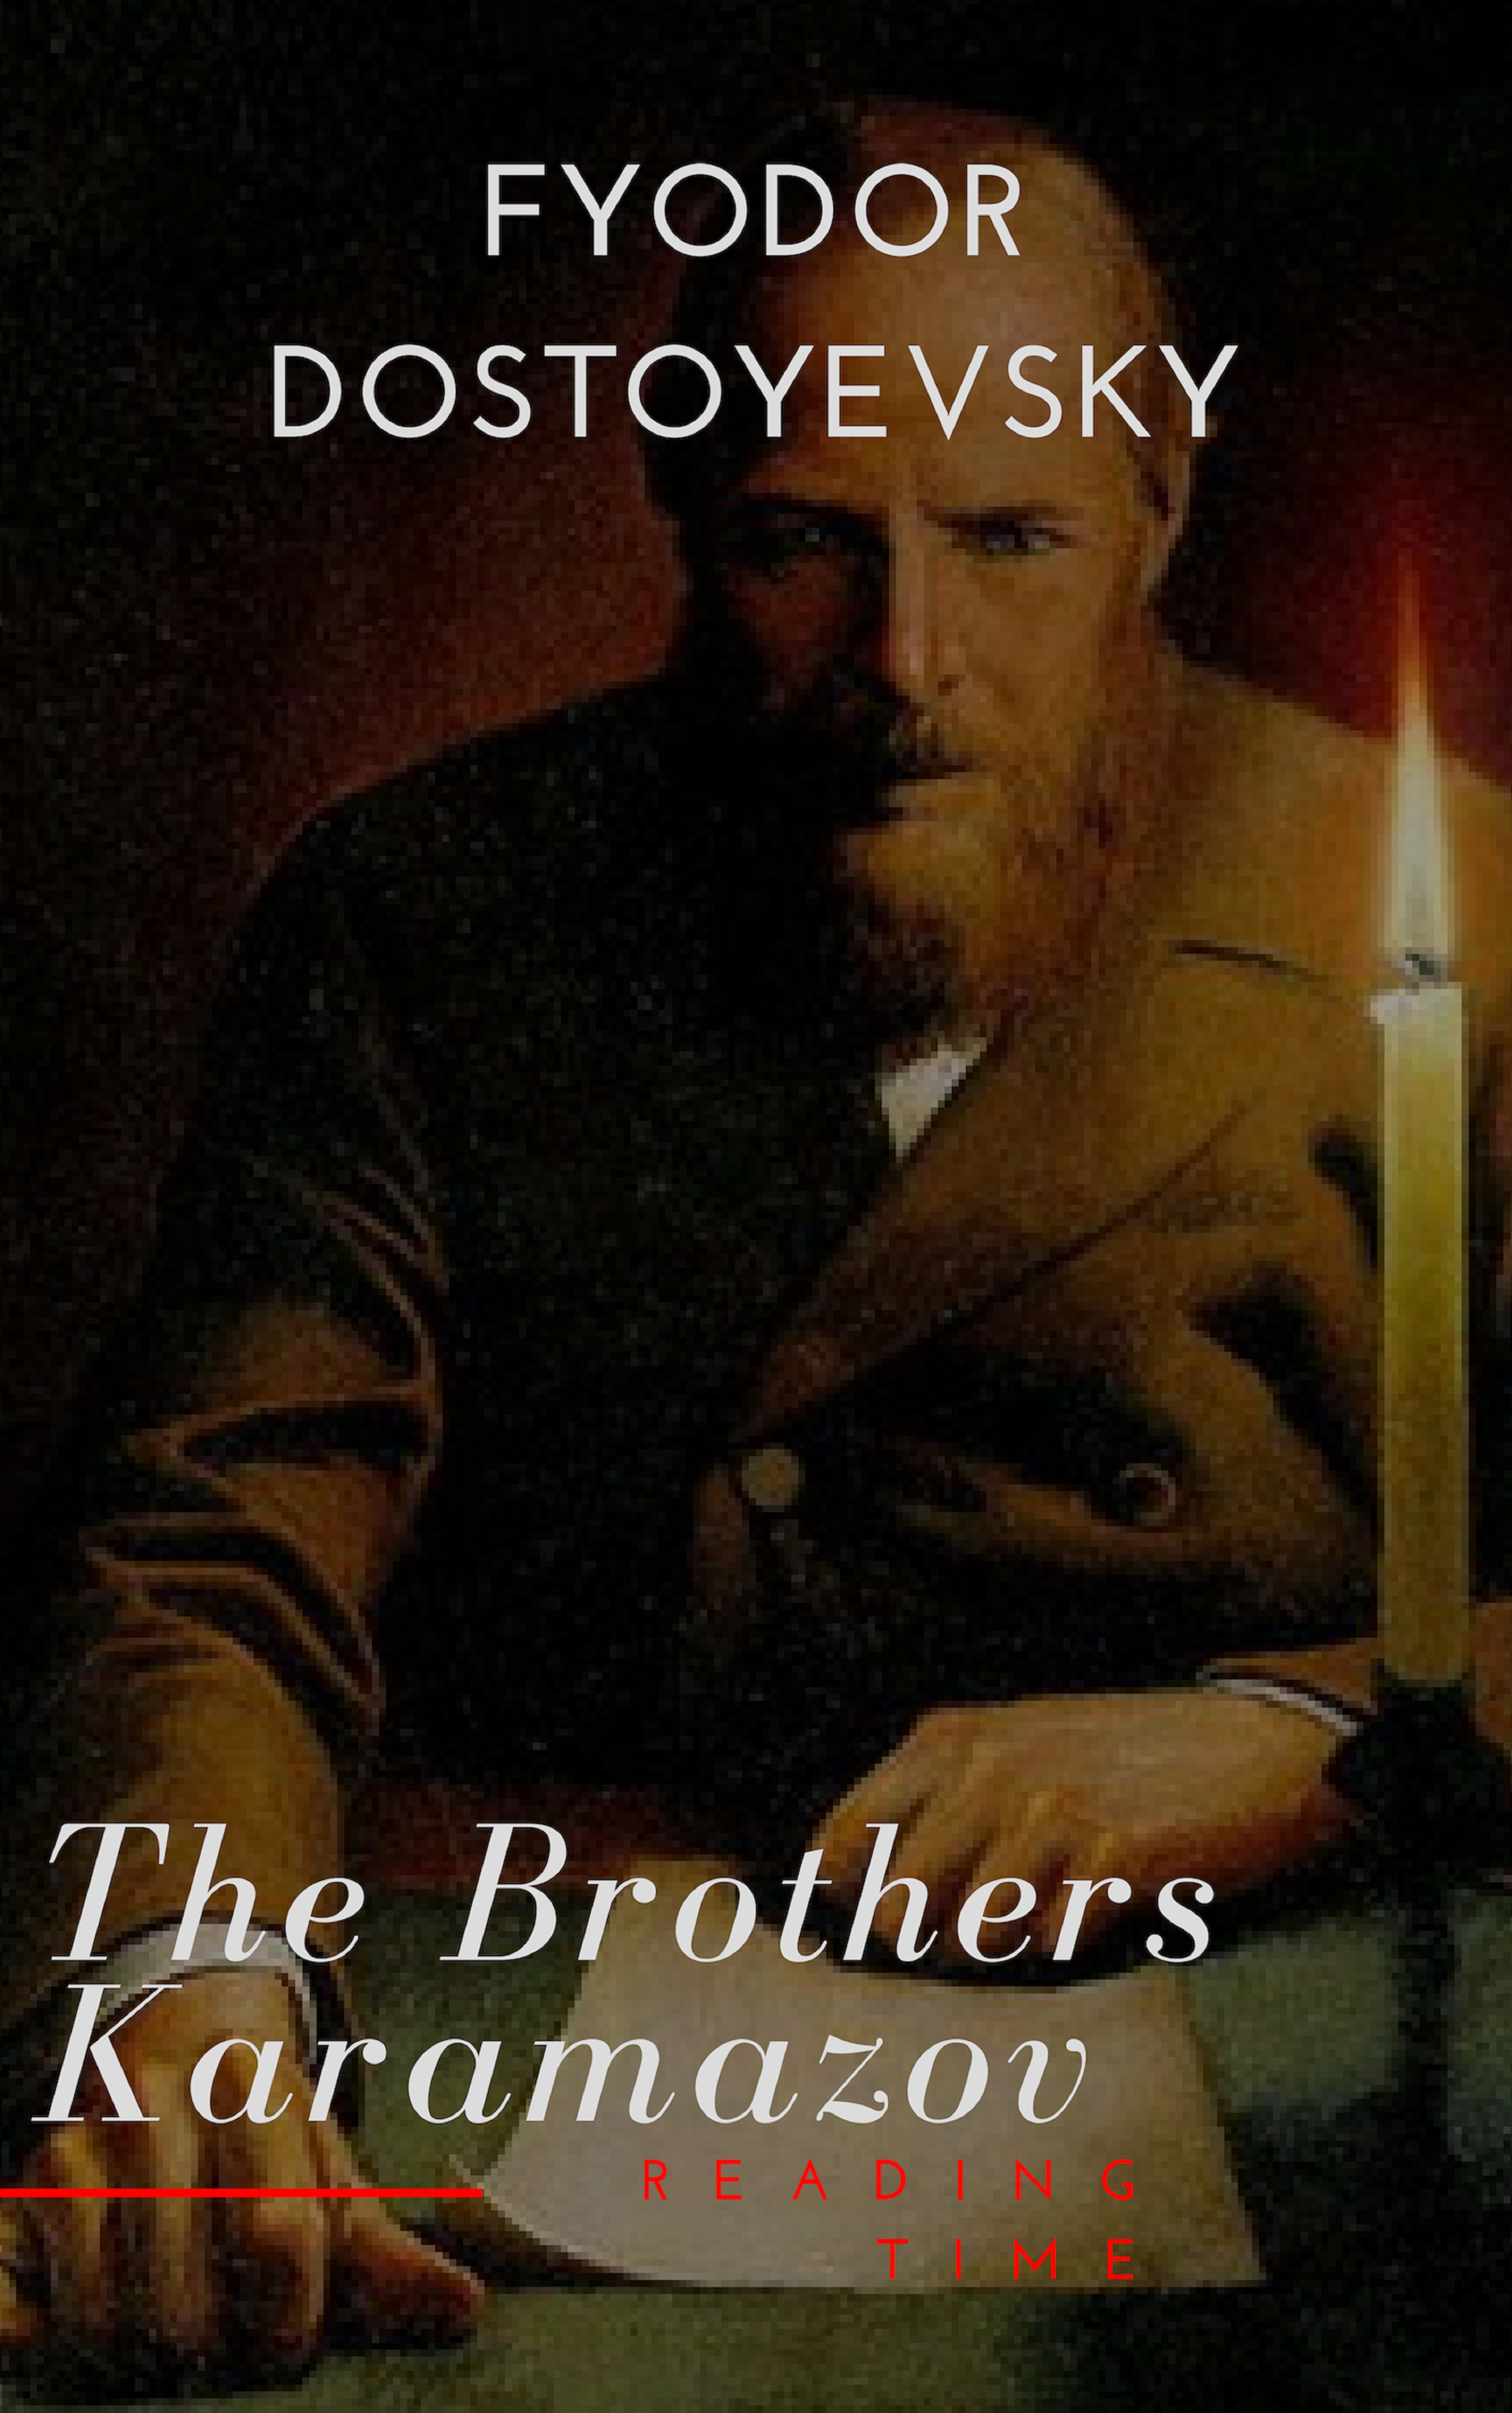 Фото - Федор Достоевский The Brothers Karamazov cengage learning gale a study guide for fedor mikhailovich dostoevsky s the brothers karamazov